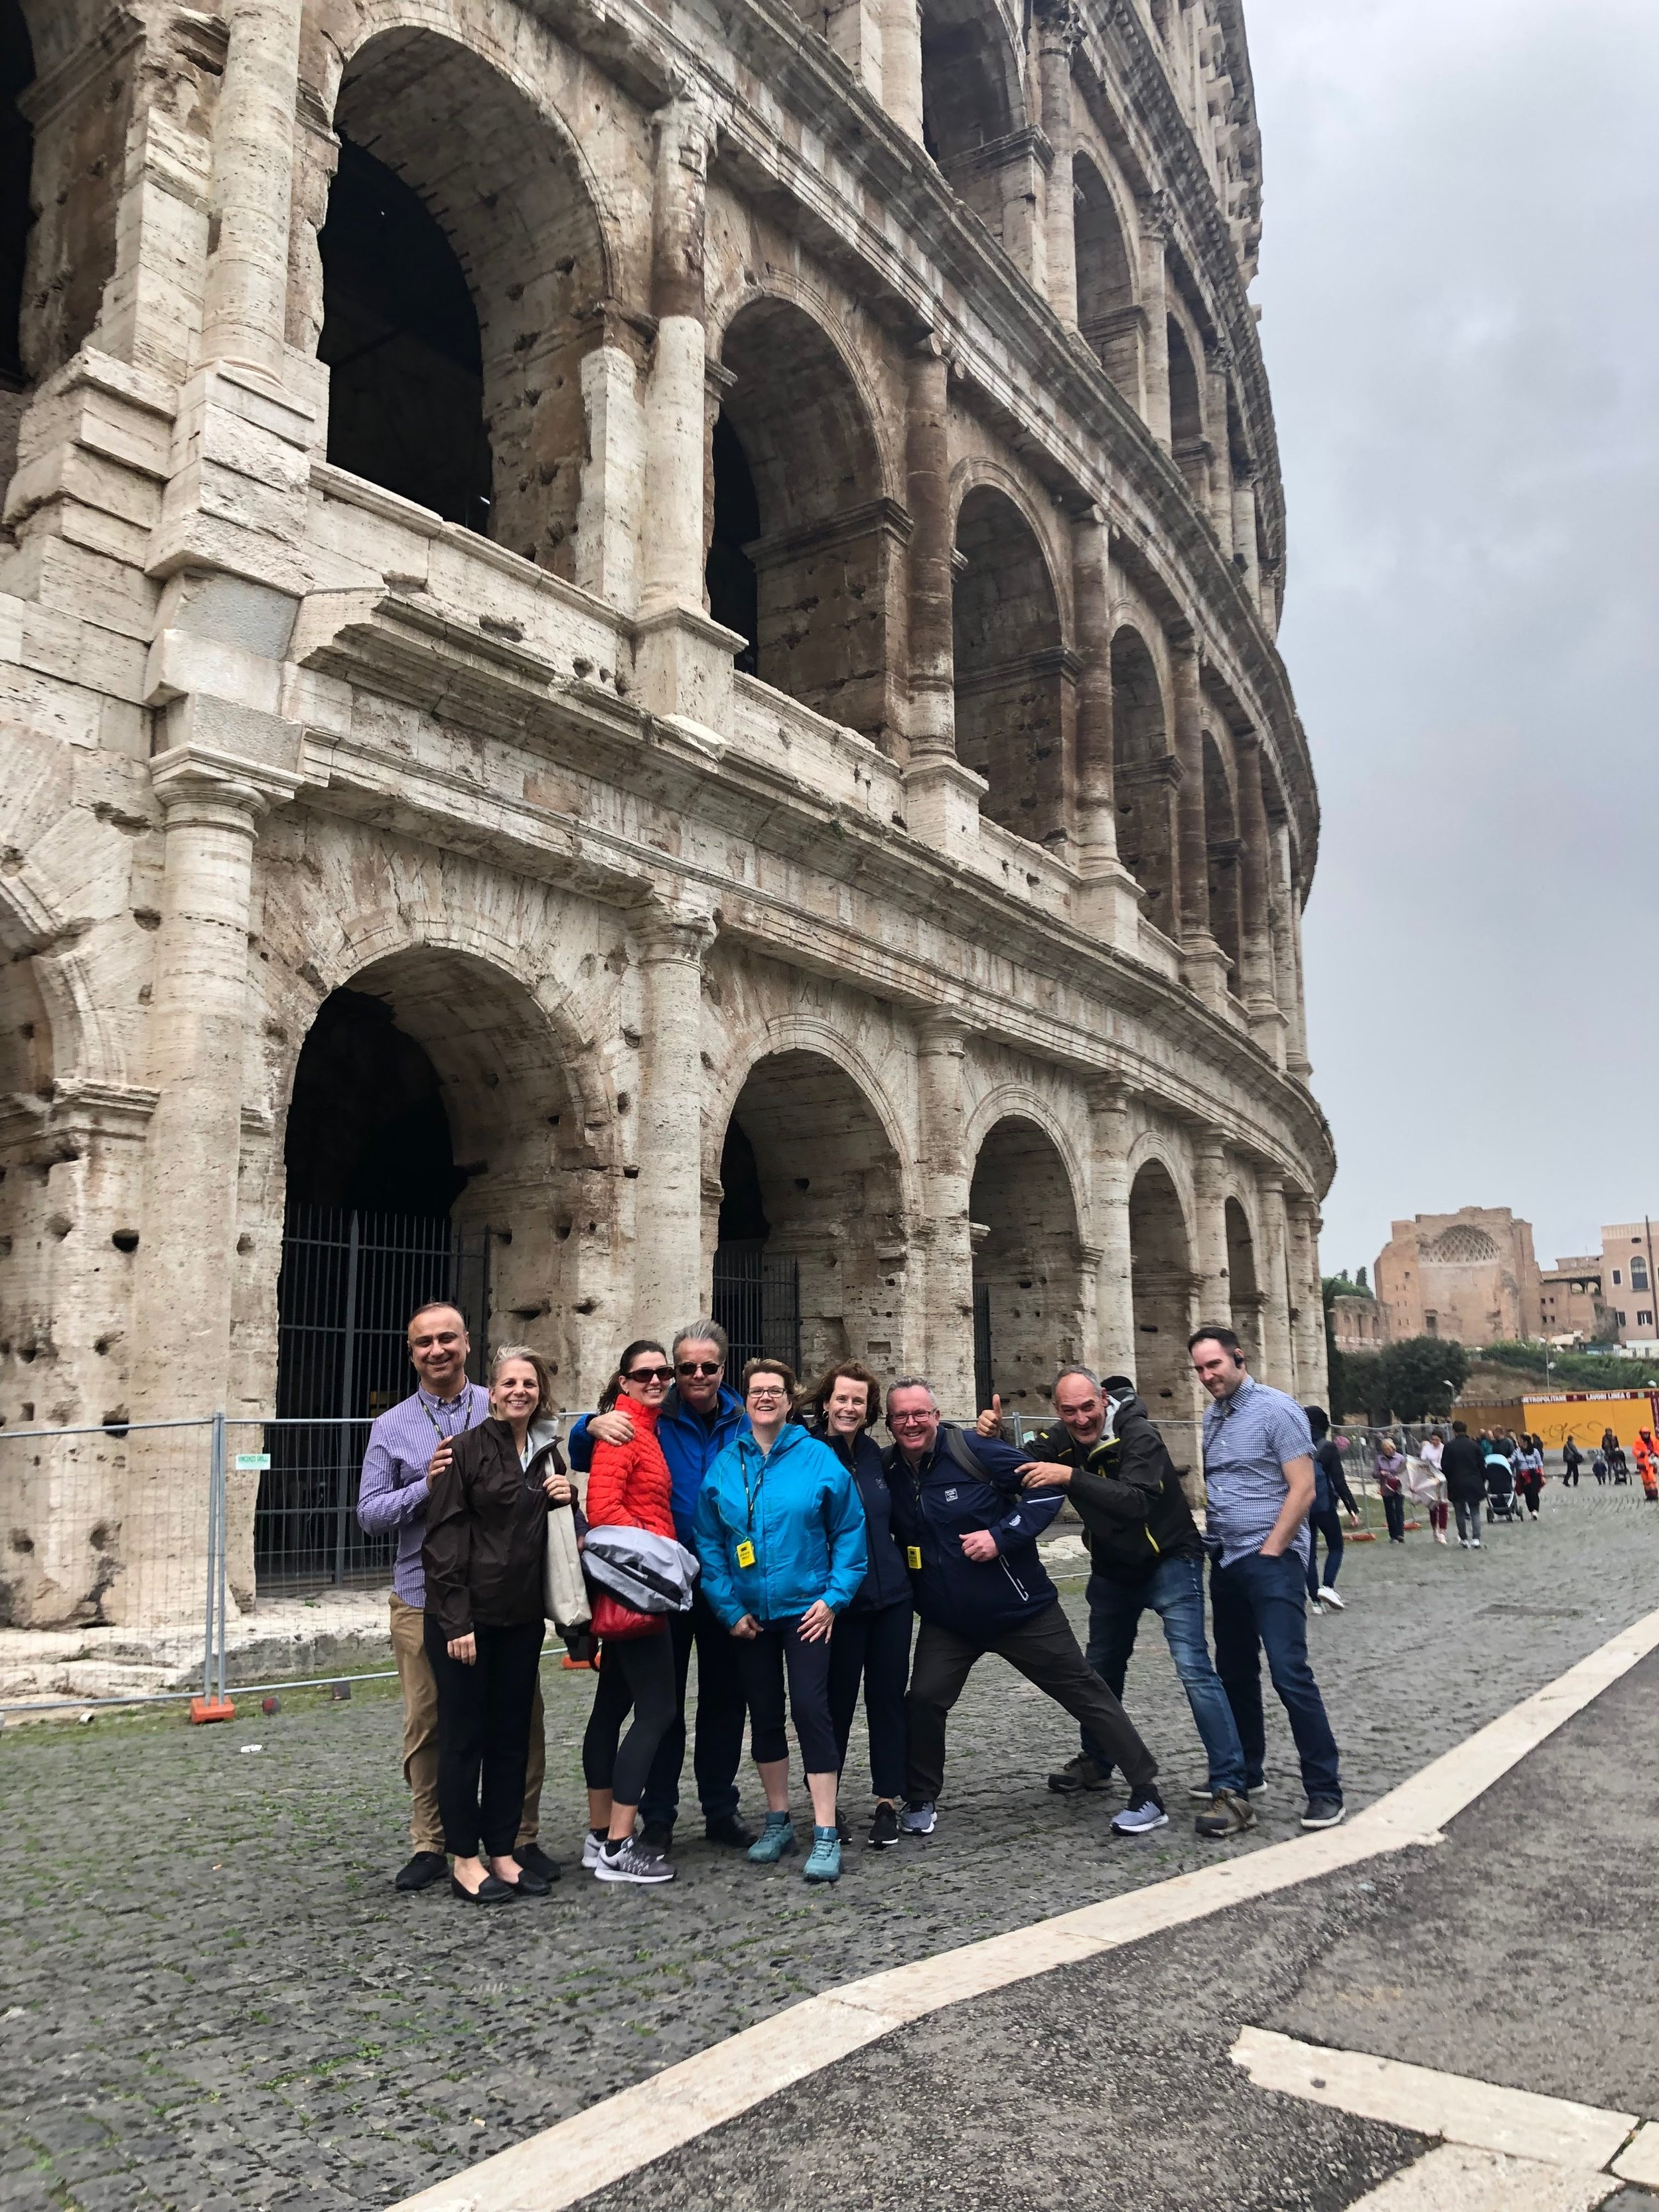 A wet and windy day at the Colosseum prevented us from going inside due to safety concerns, but still gained an impressive view.